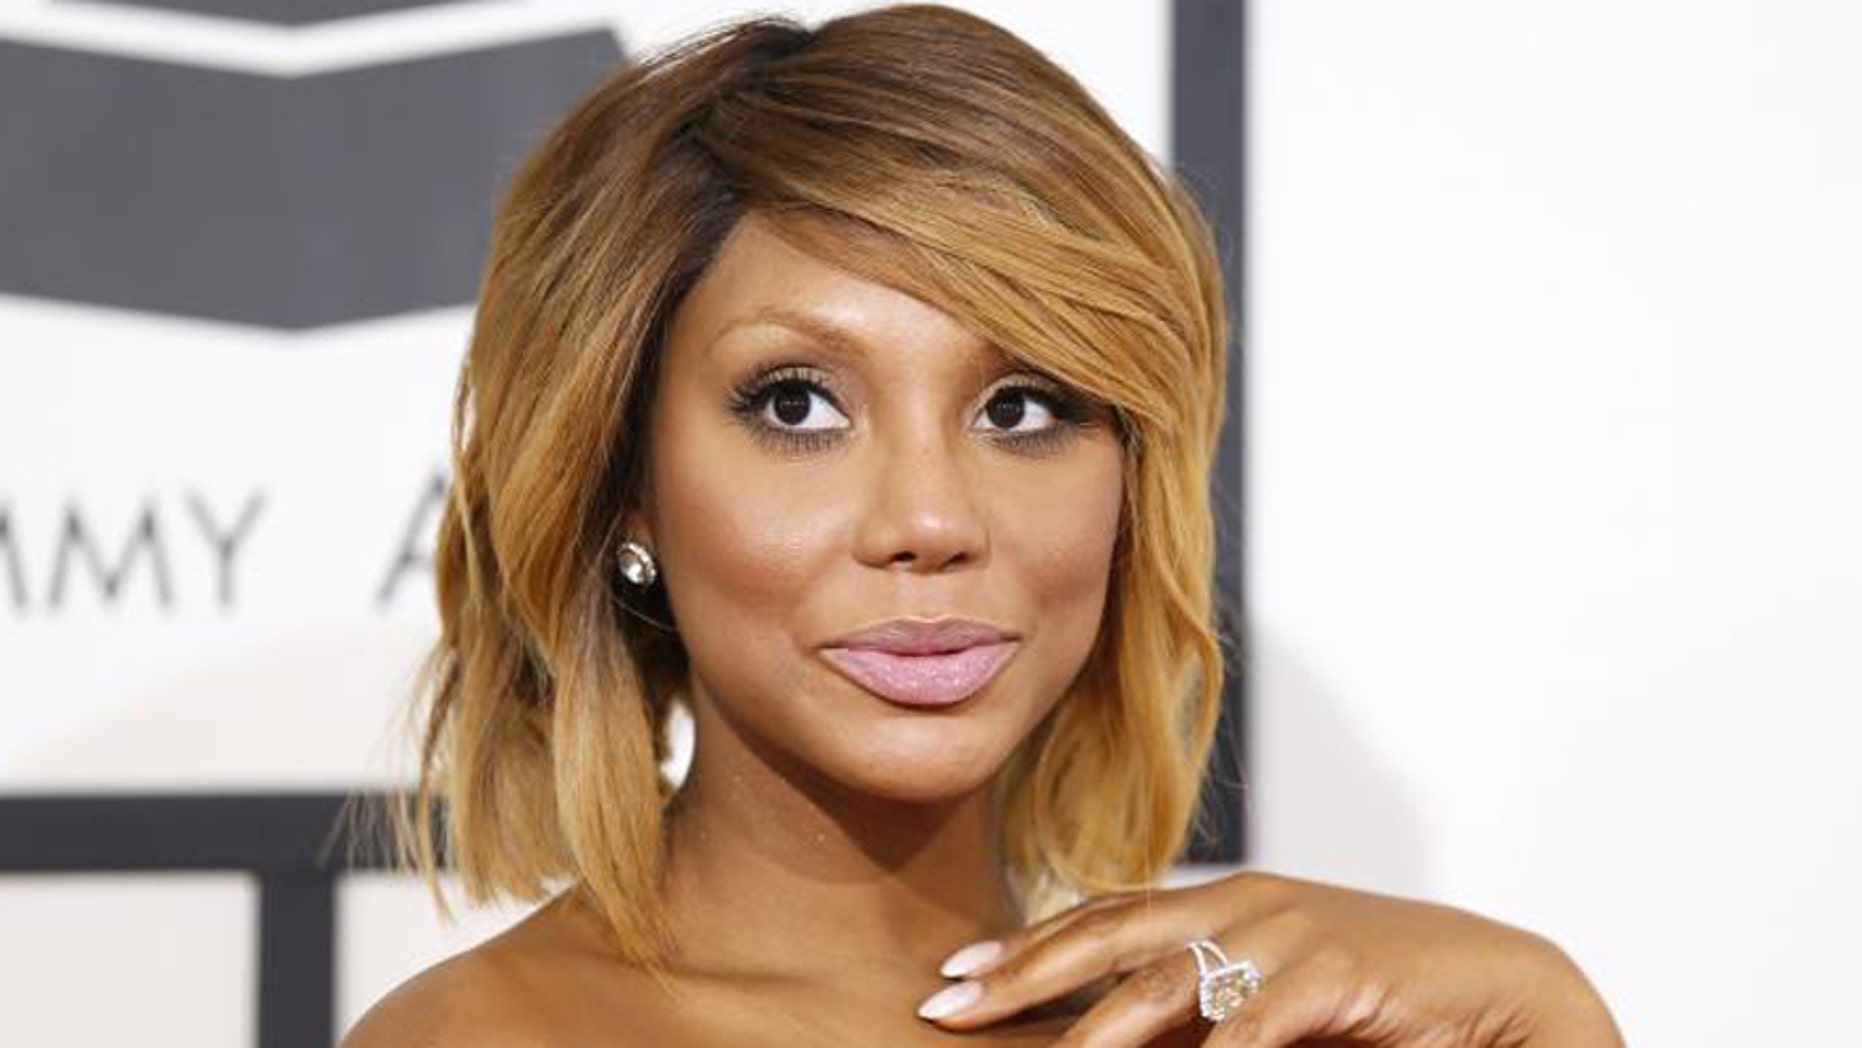 R&B artist Tamar Braxton arrives at the 56th annual Grammy Awards in Los Angeles, California January 26, 2014.